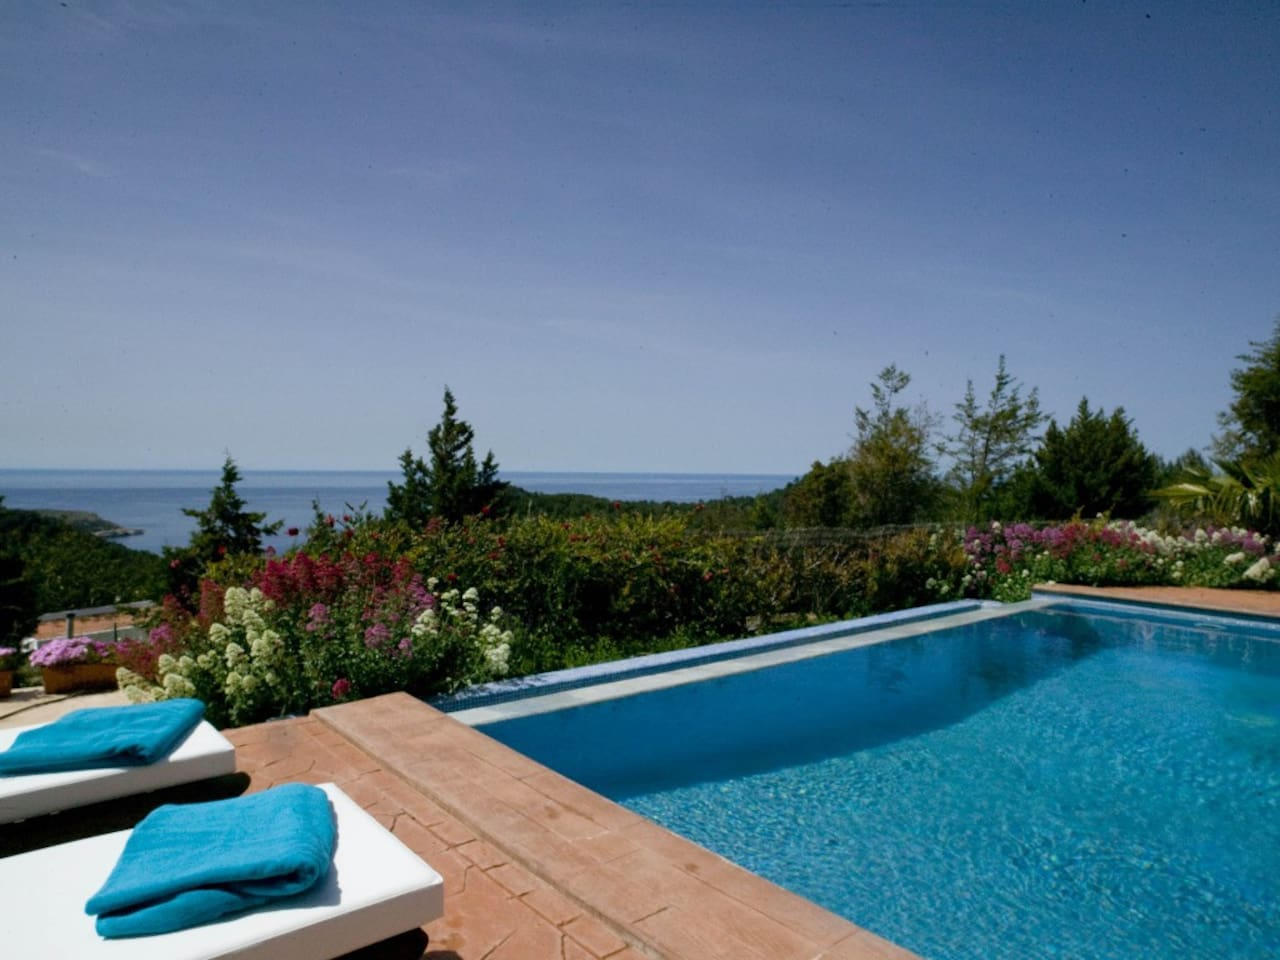 Pool area with sea view